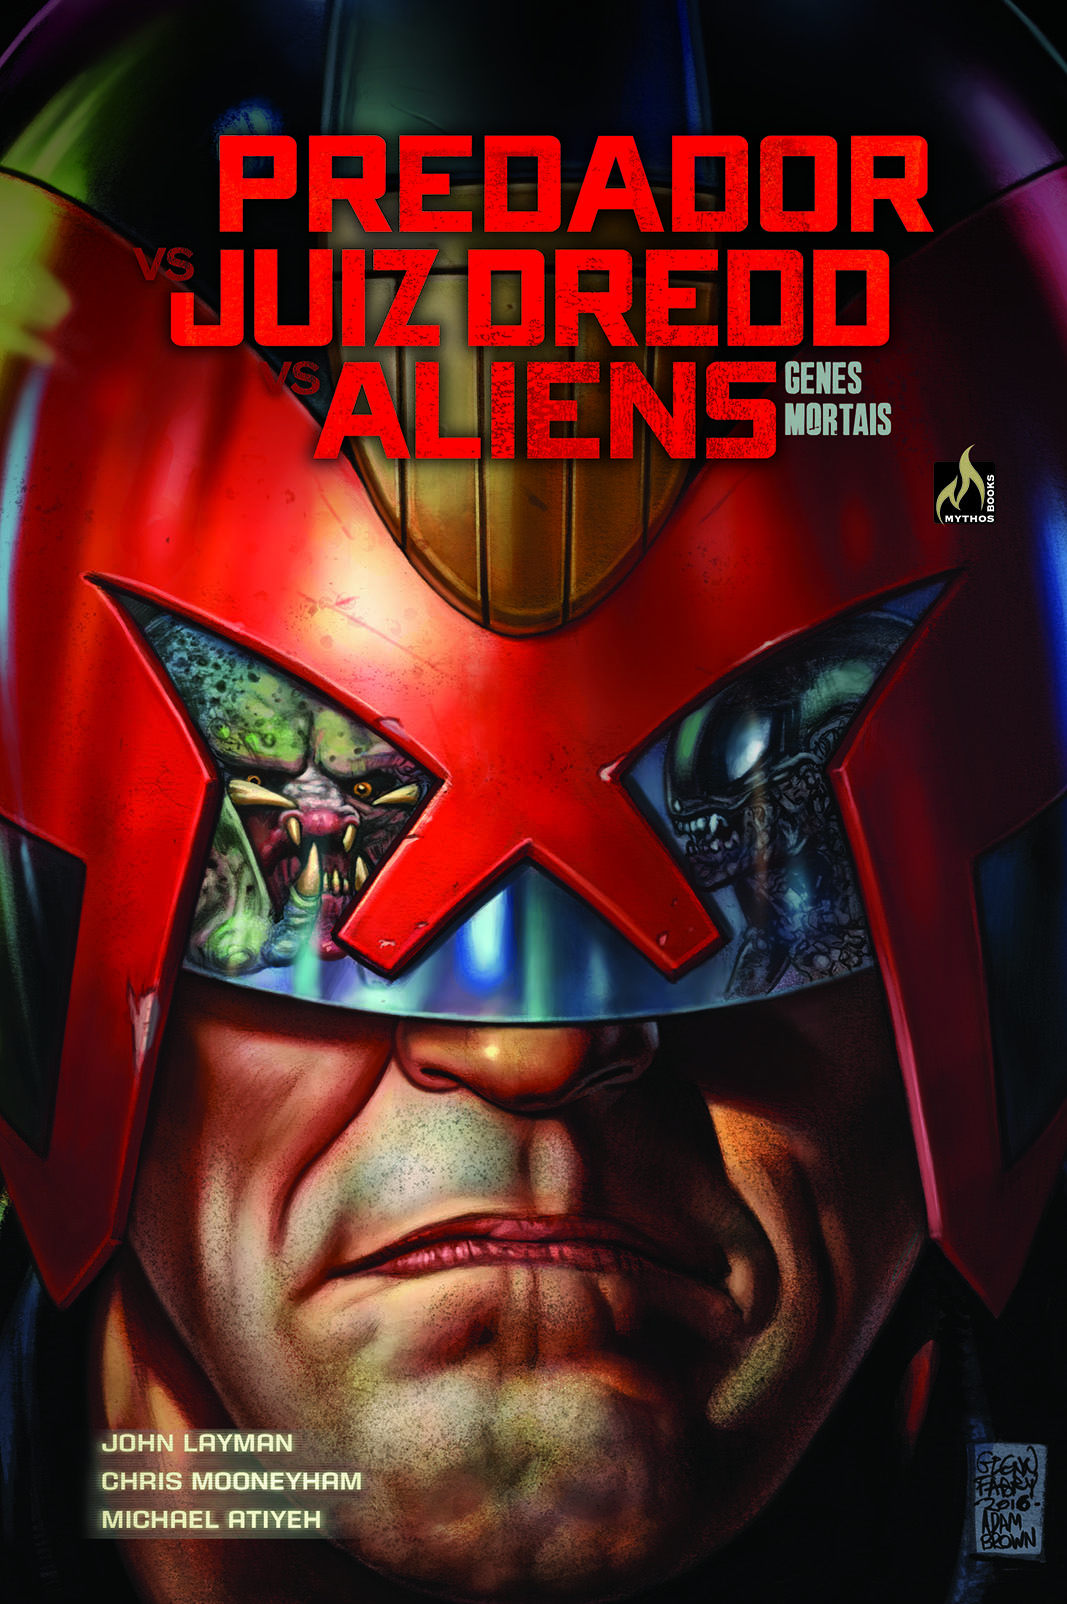 PREDADOR VS. JUIZ DREDD VS. ALIENS